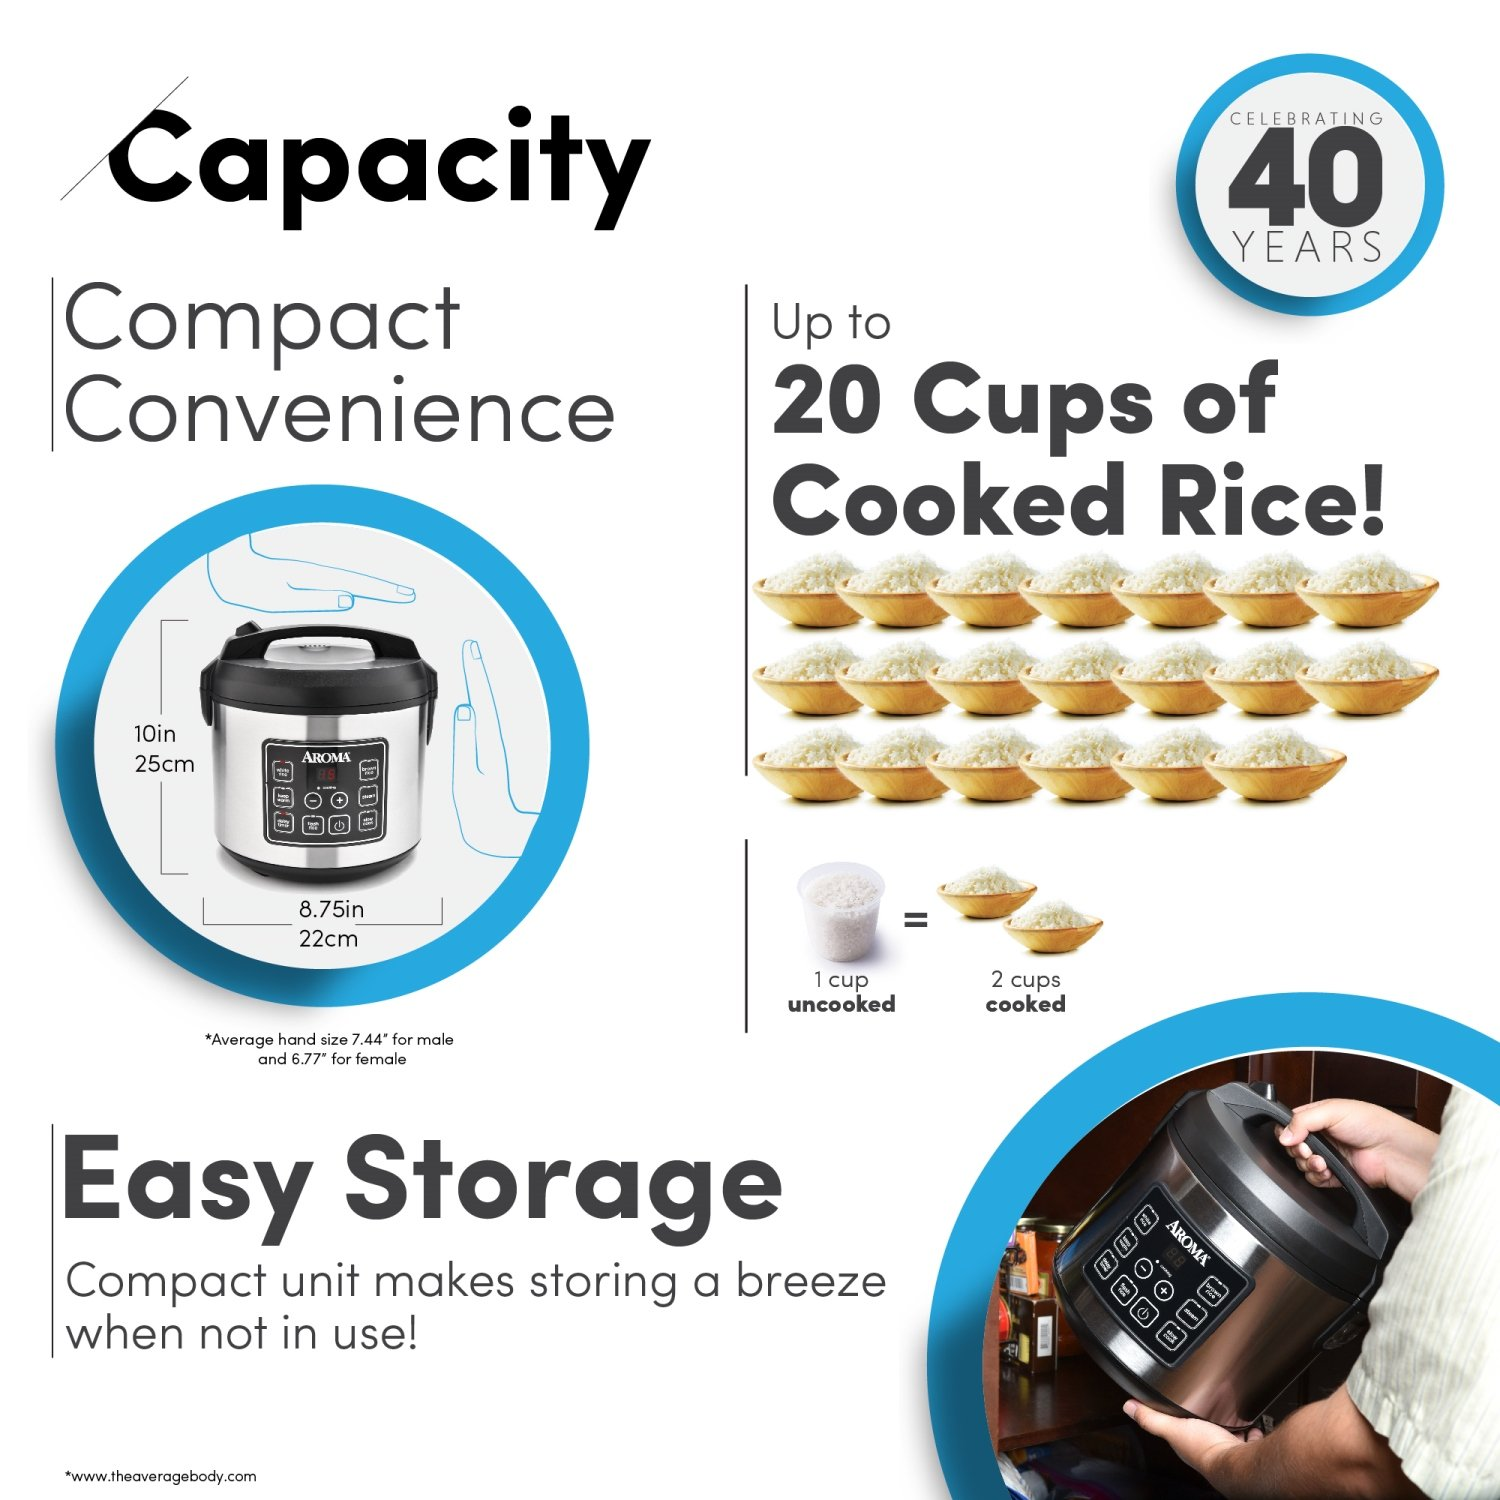 Aroma Housewares 20 Cup Cooked (10 cup uncooked) Digital Rice Cooker, Slow Cooker, Food Steamer, SS Exterior (ARC-150SB) by Aroma Housewares (Image #5)